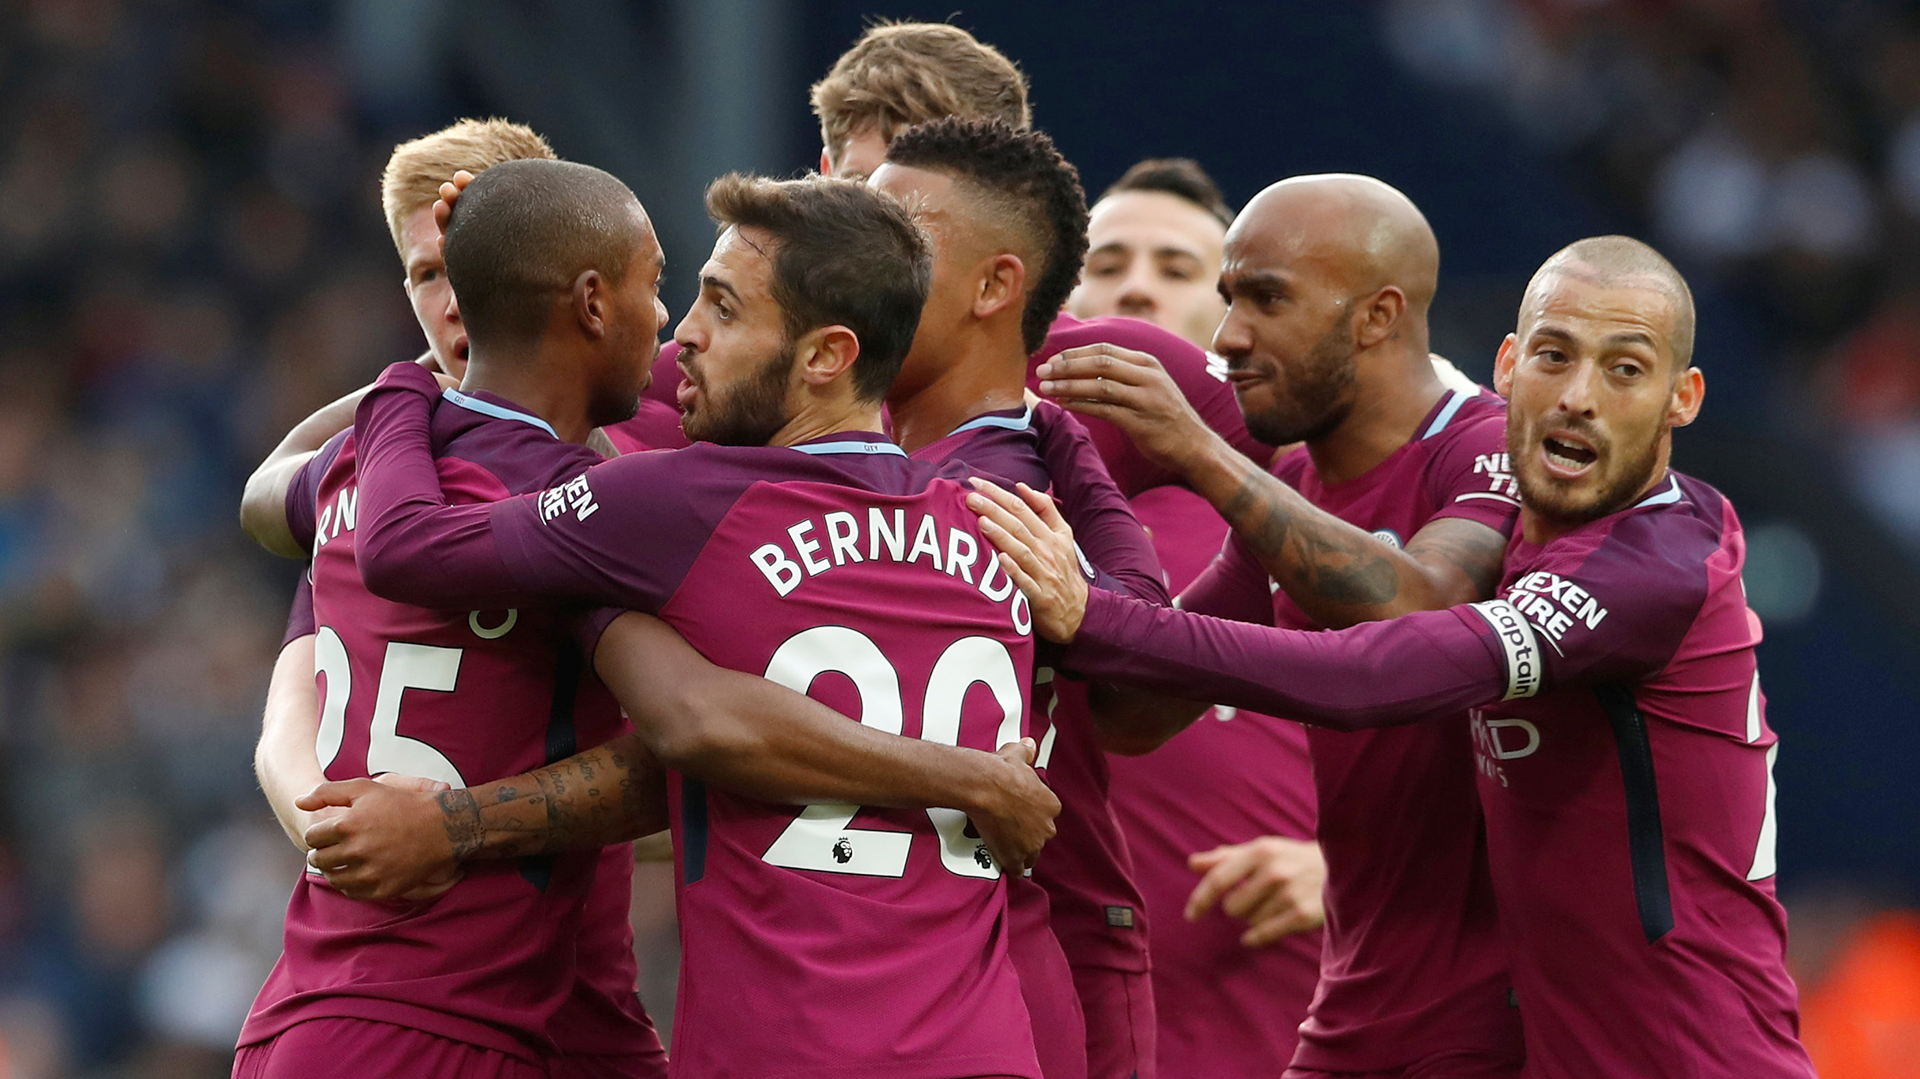 Mancester City lidera con comodidad la Premier League (Reuters)